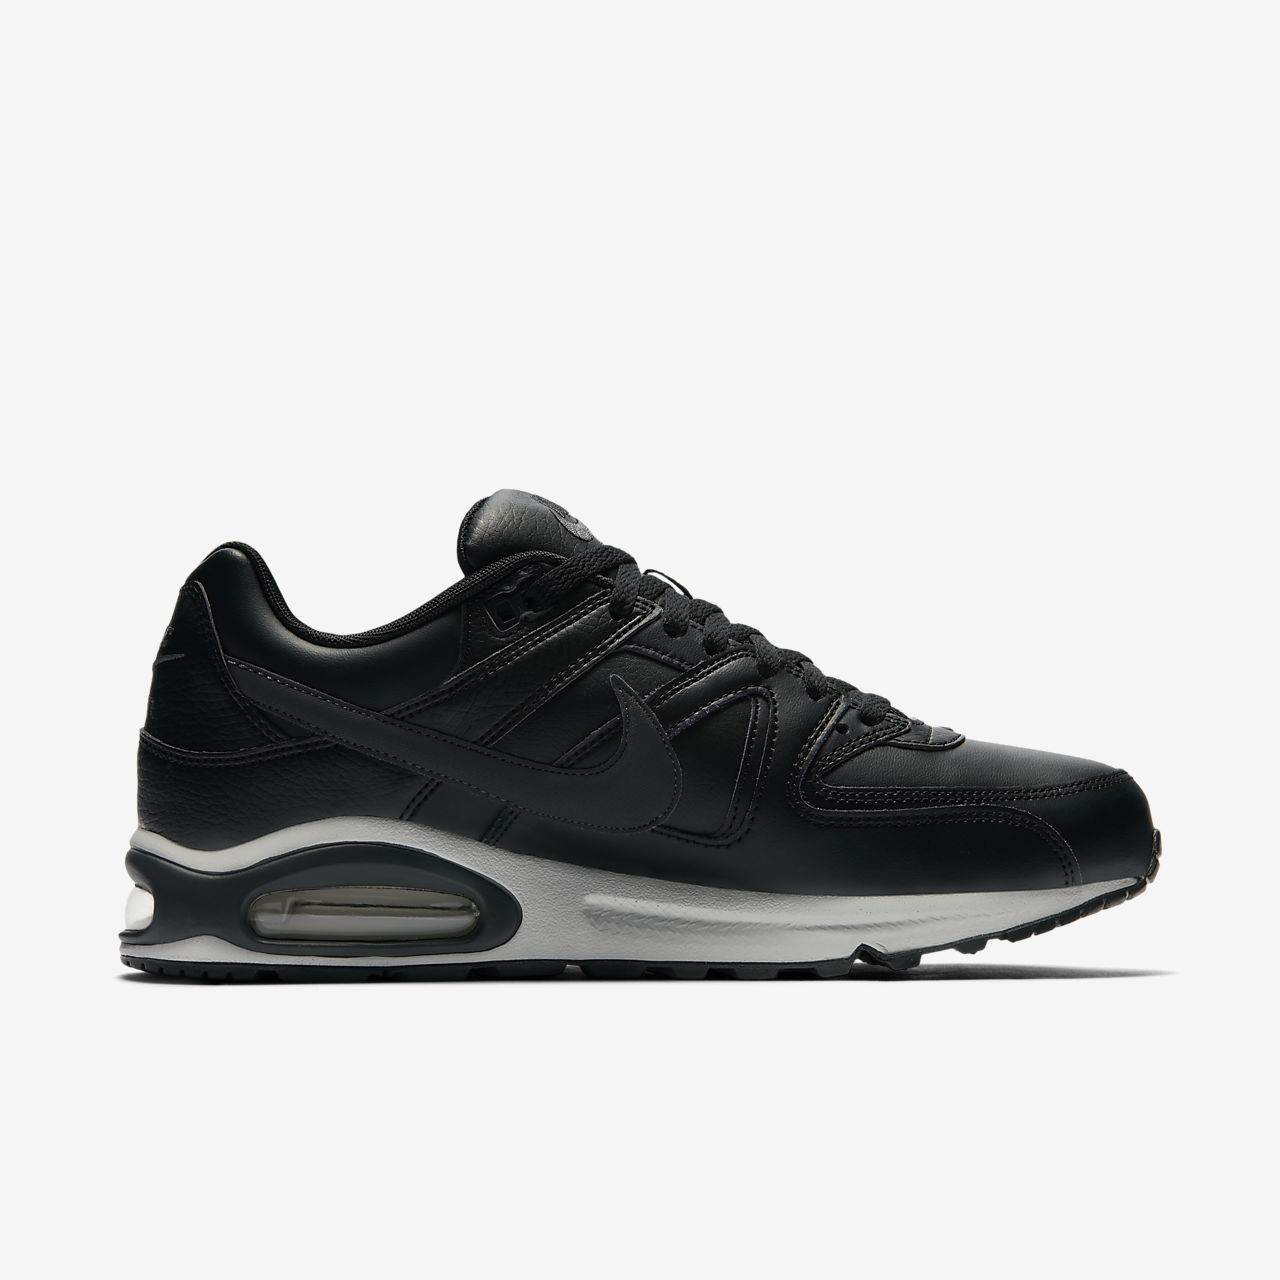 Nike Air Max Command Men's Shoe